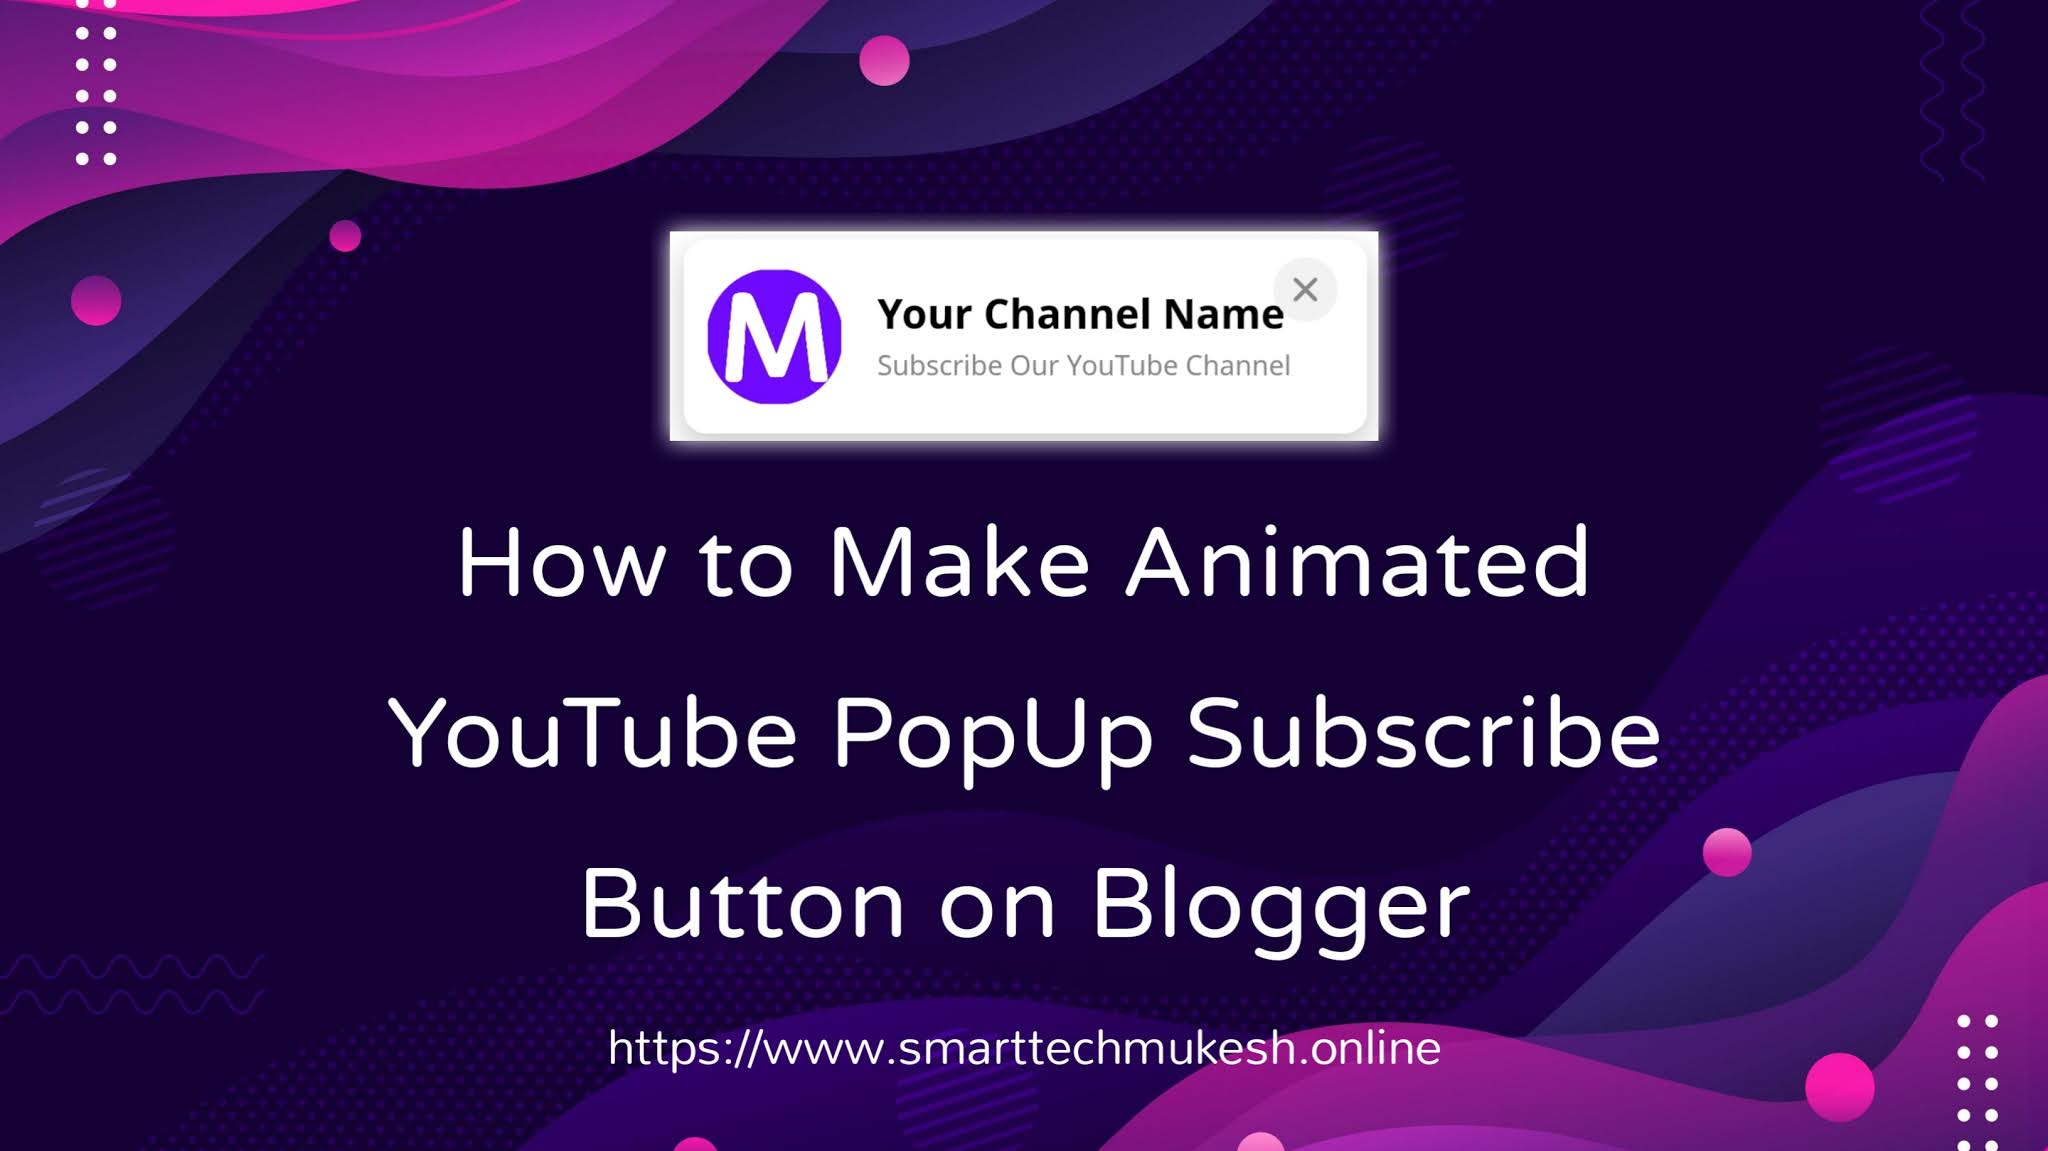 How to Make Animated YouTube PopUp Subscribe Button on Blogger